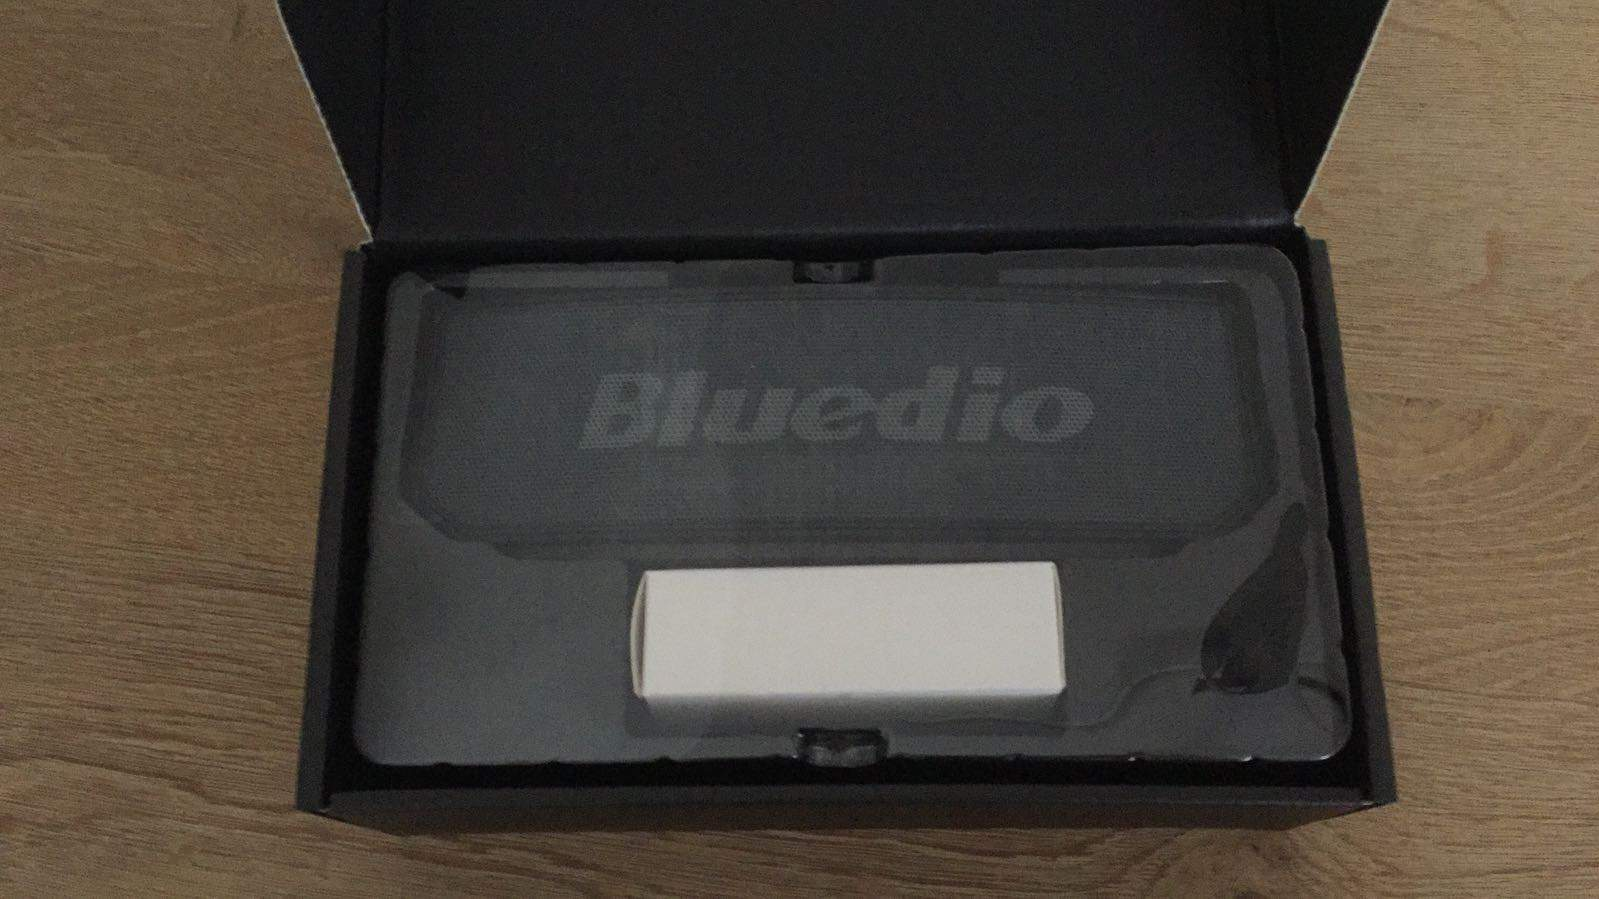 Bluedio BS 6 Inside Box